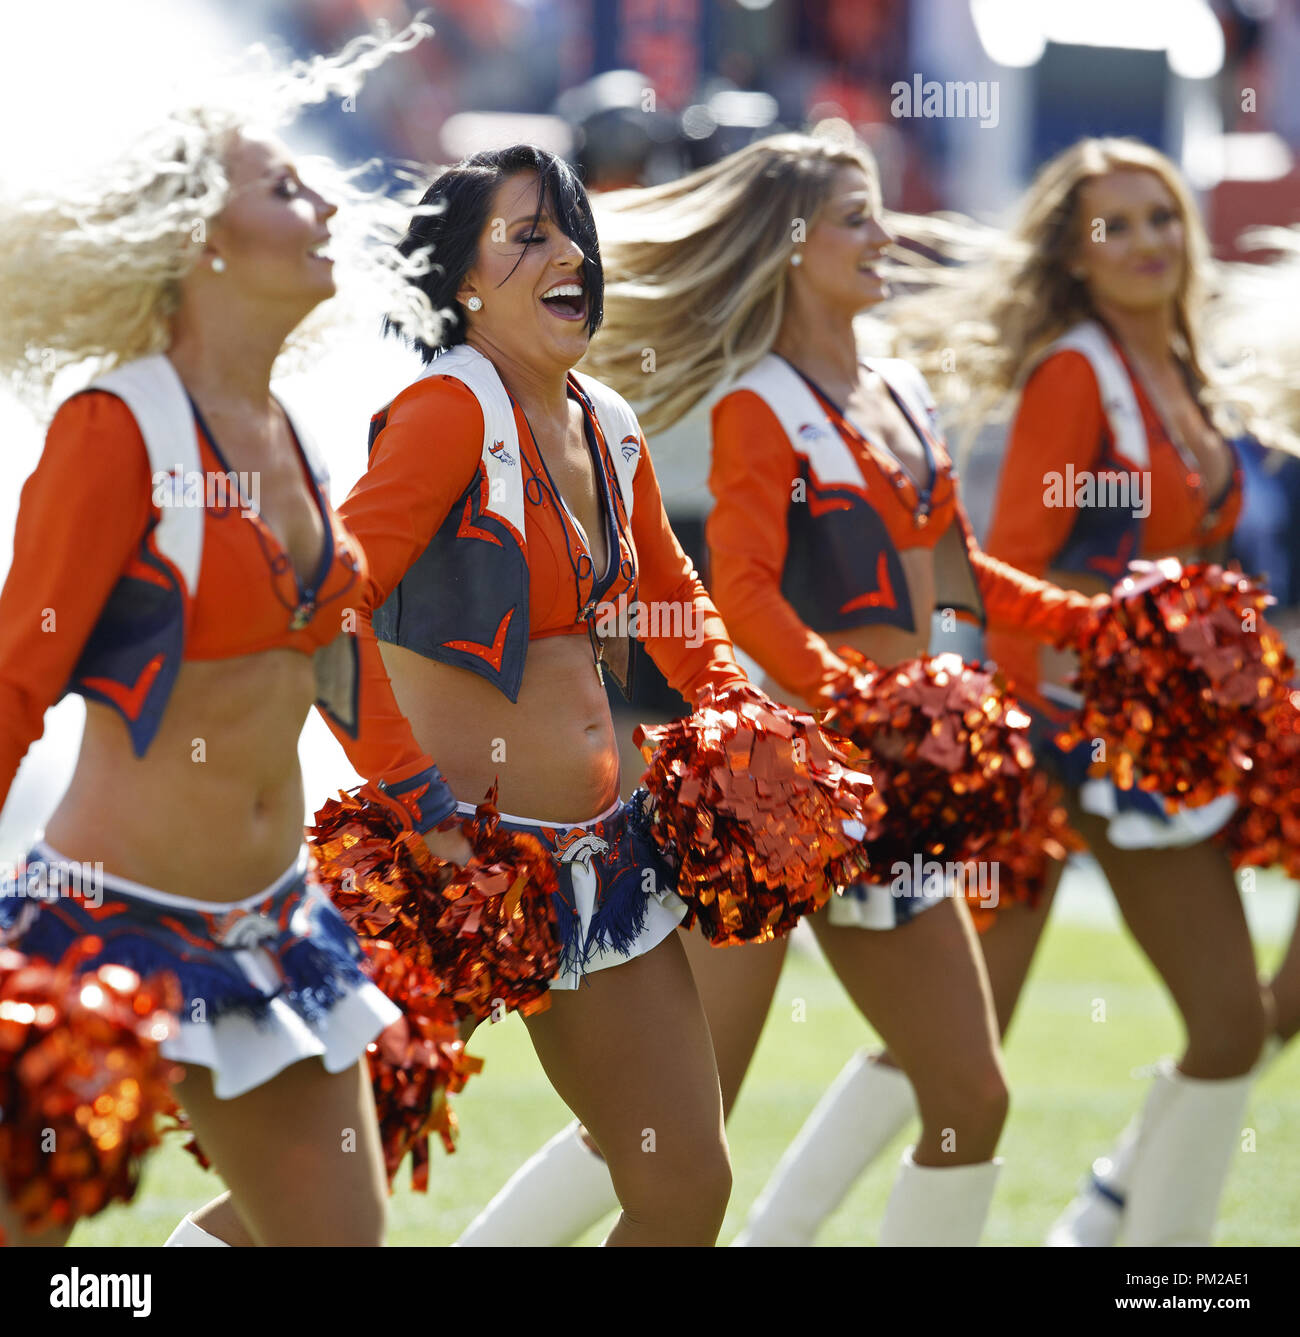 San Diego Chargers Cheerleaders Photos: Denver Broncos Cheerleaders Stock Photos & Denver Broncos